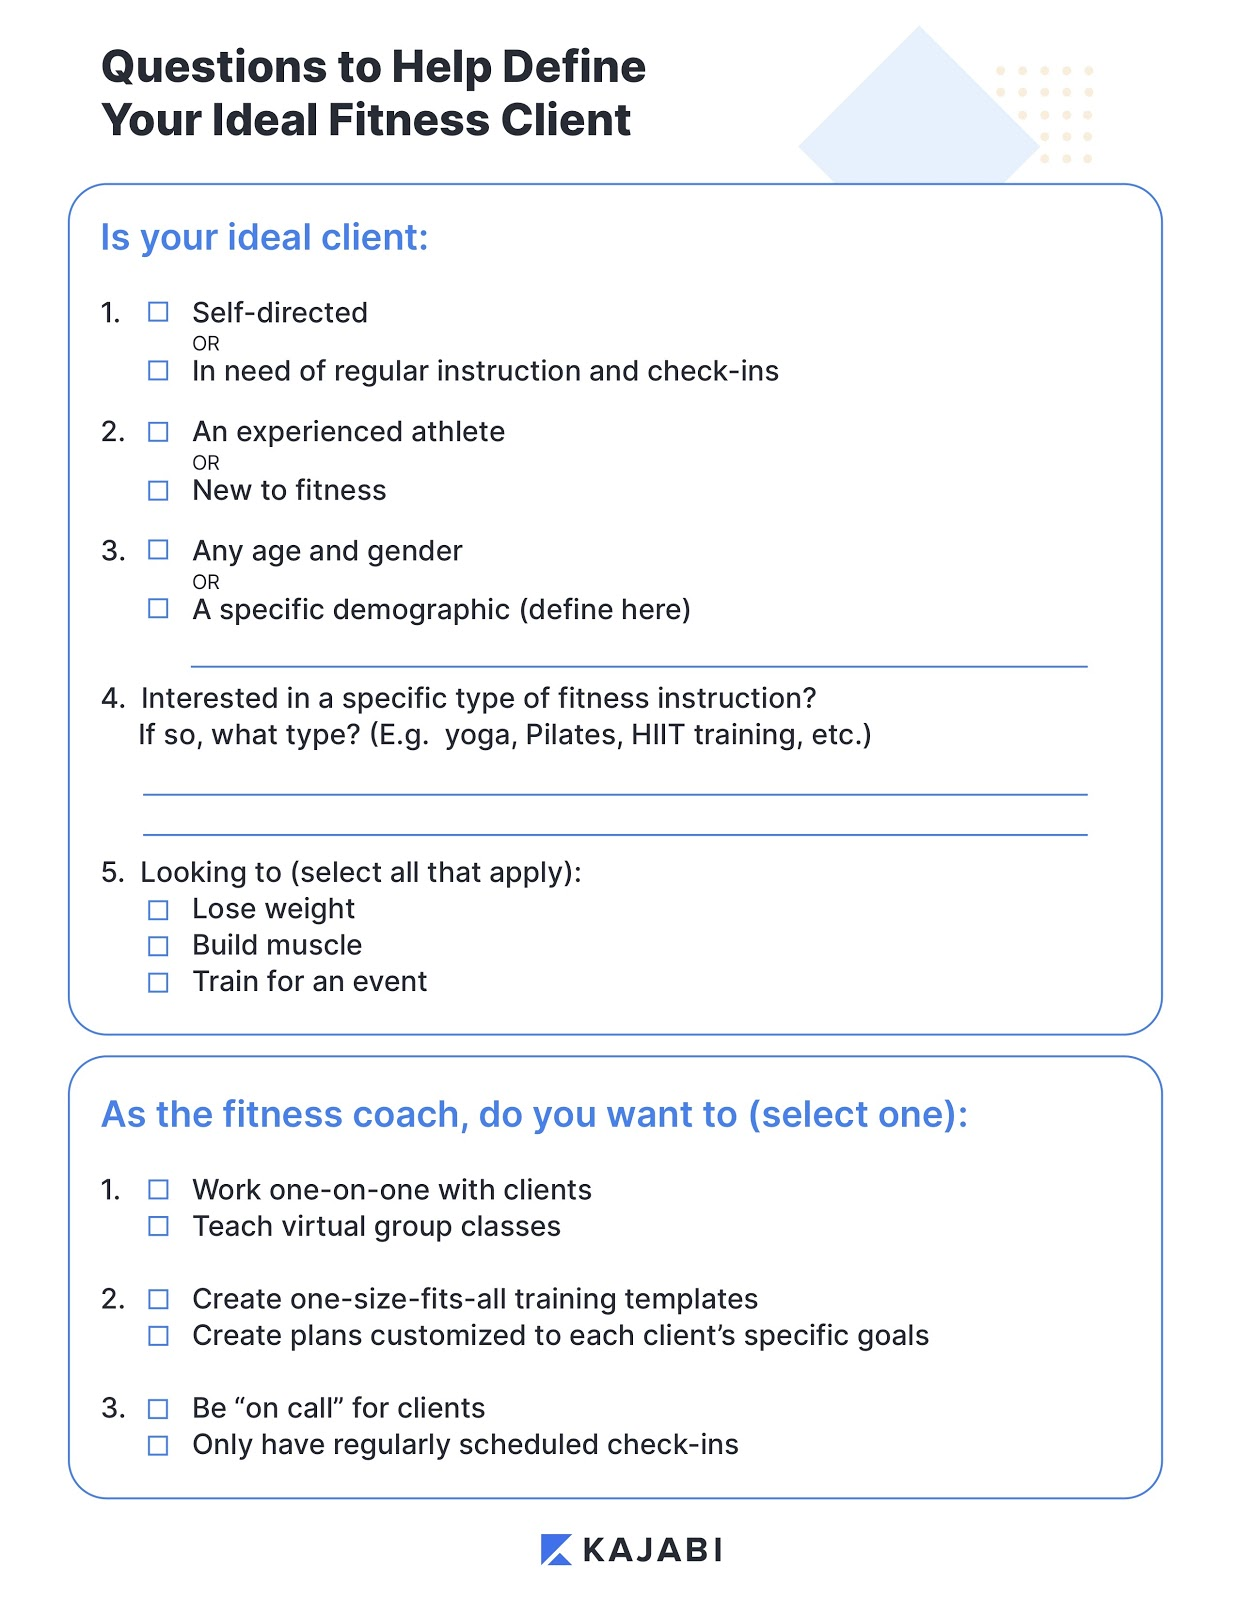 Worksheet to help fitness coaches define their ideal client